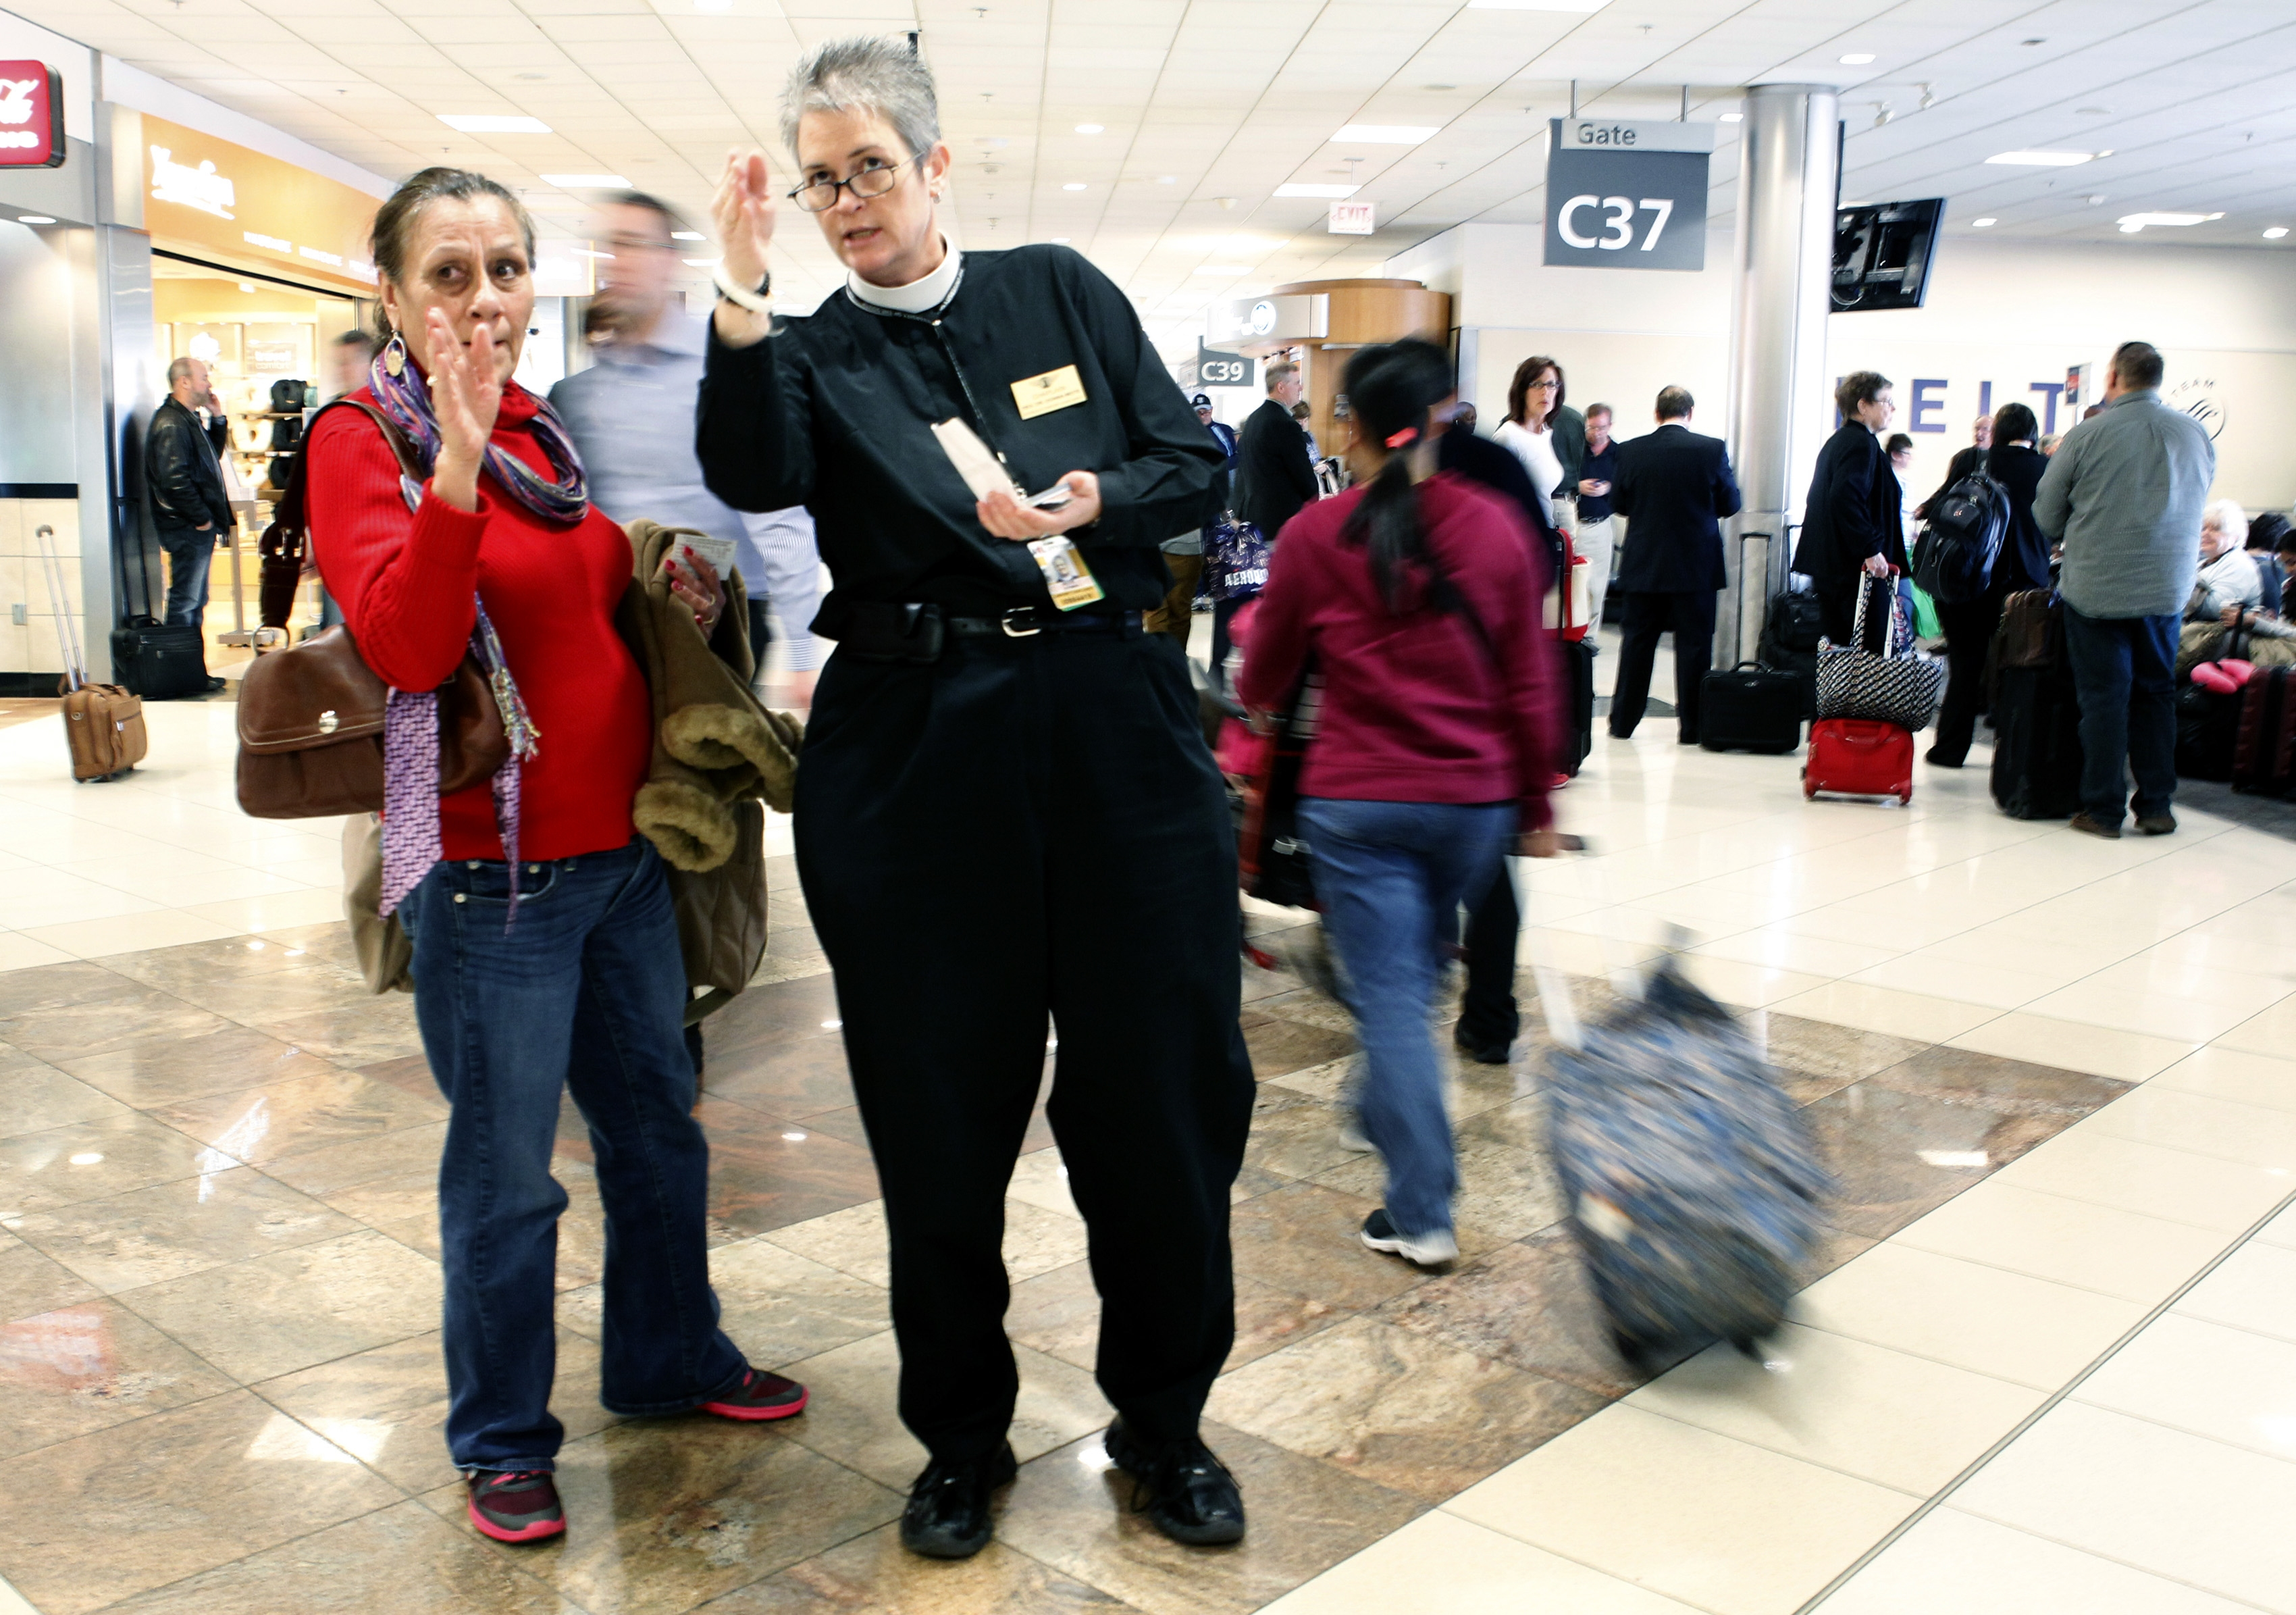 The Rev. Donna Mote points passenger in right direction as Atlanta airport chaplain.